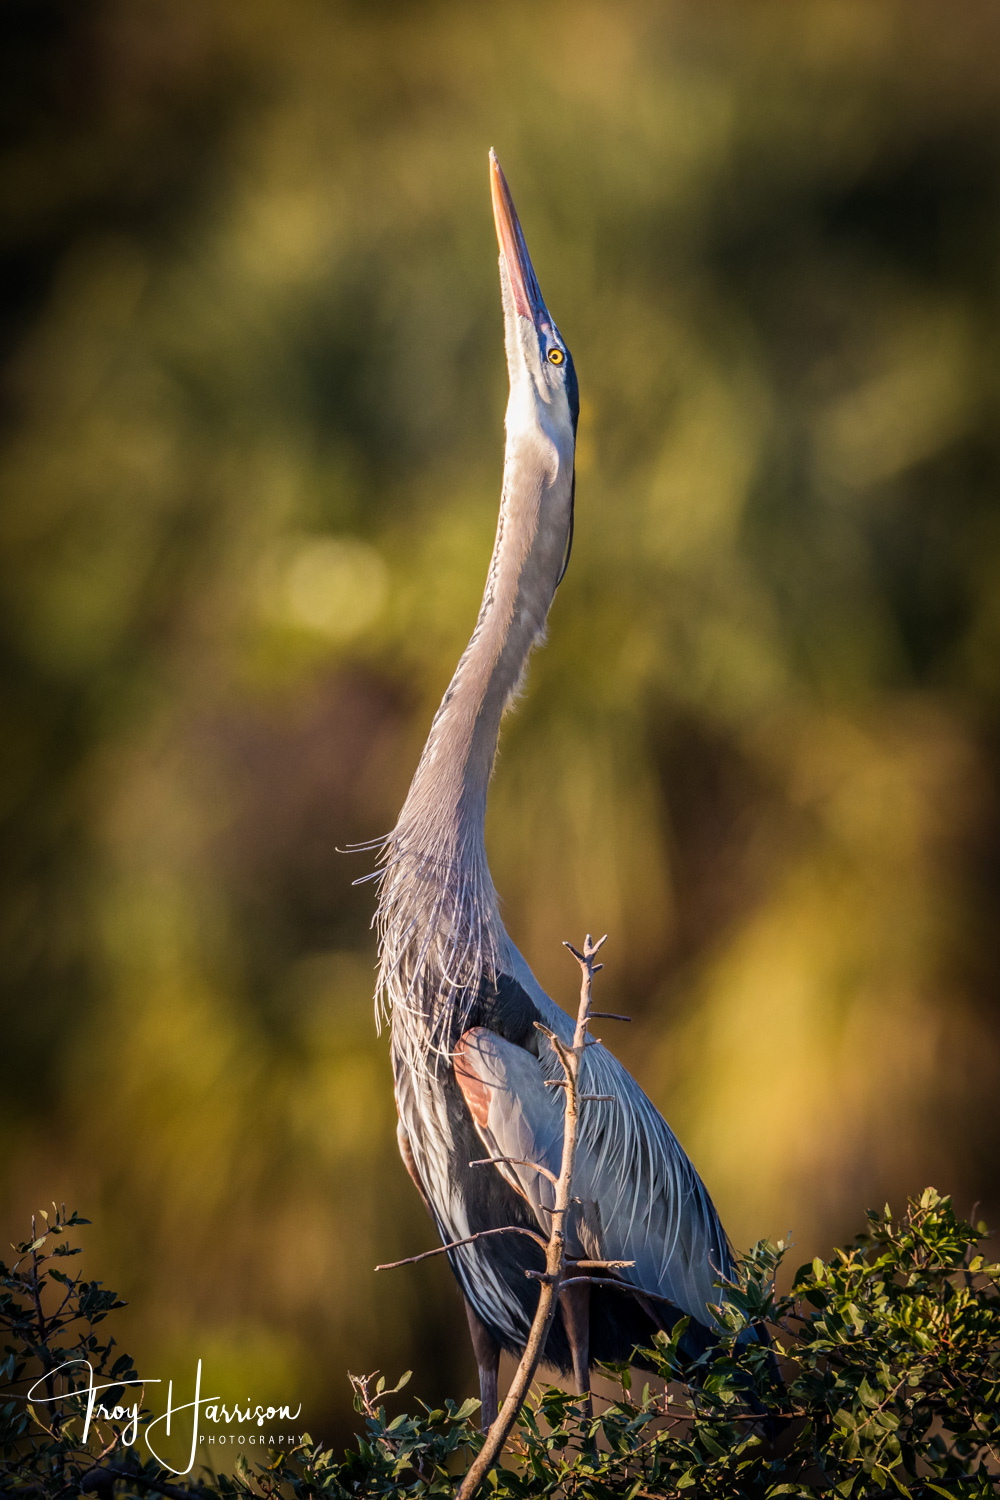 1 - Great Blue Heron, Everglades, Jan. 2019, img 3224.jpg